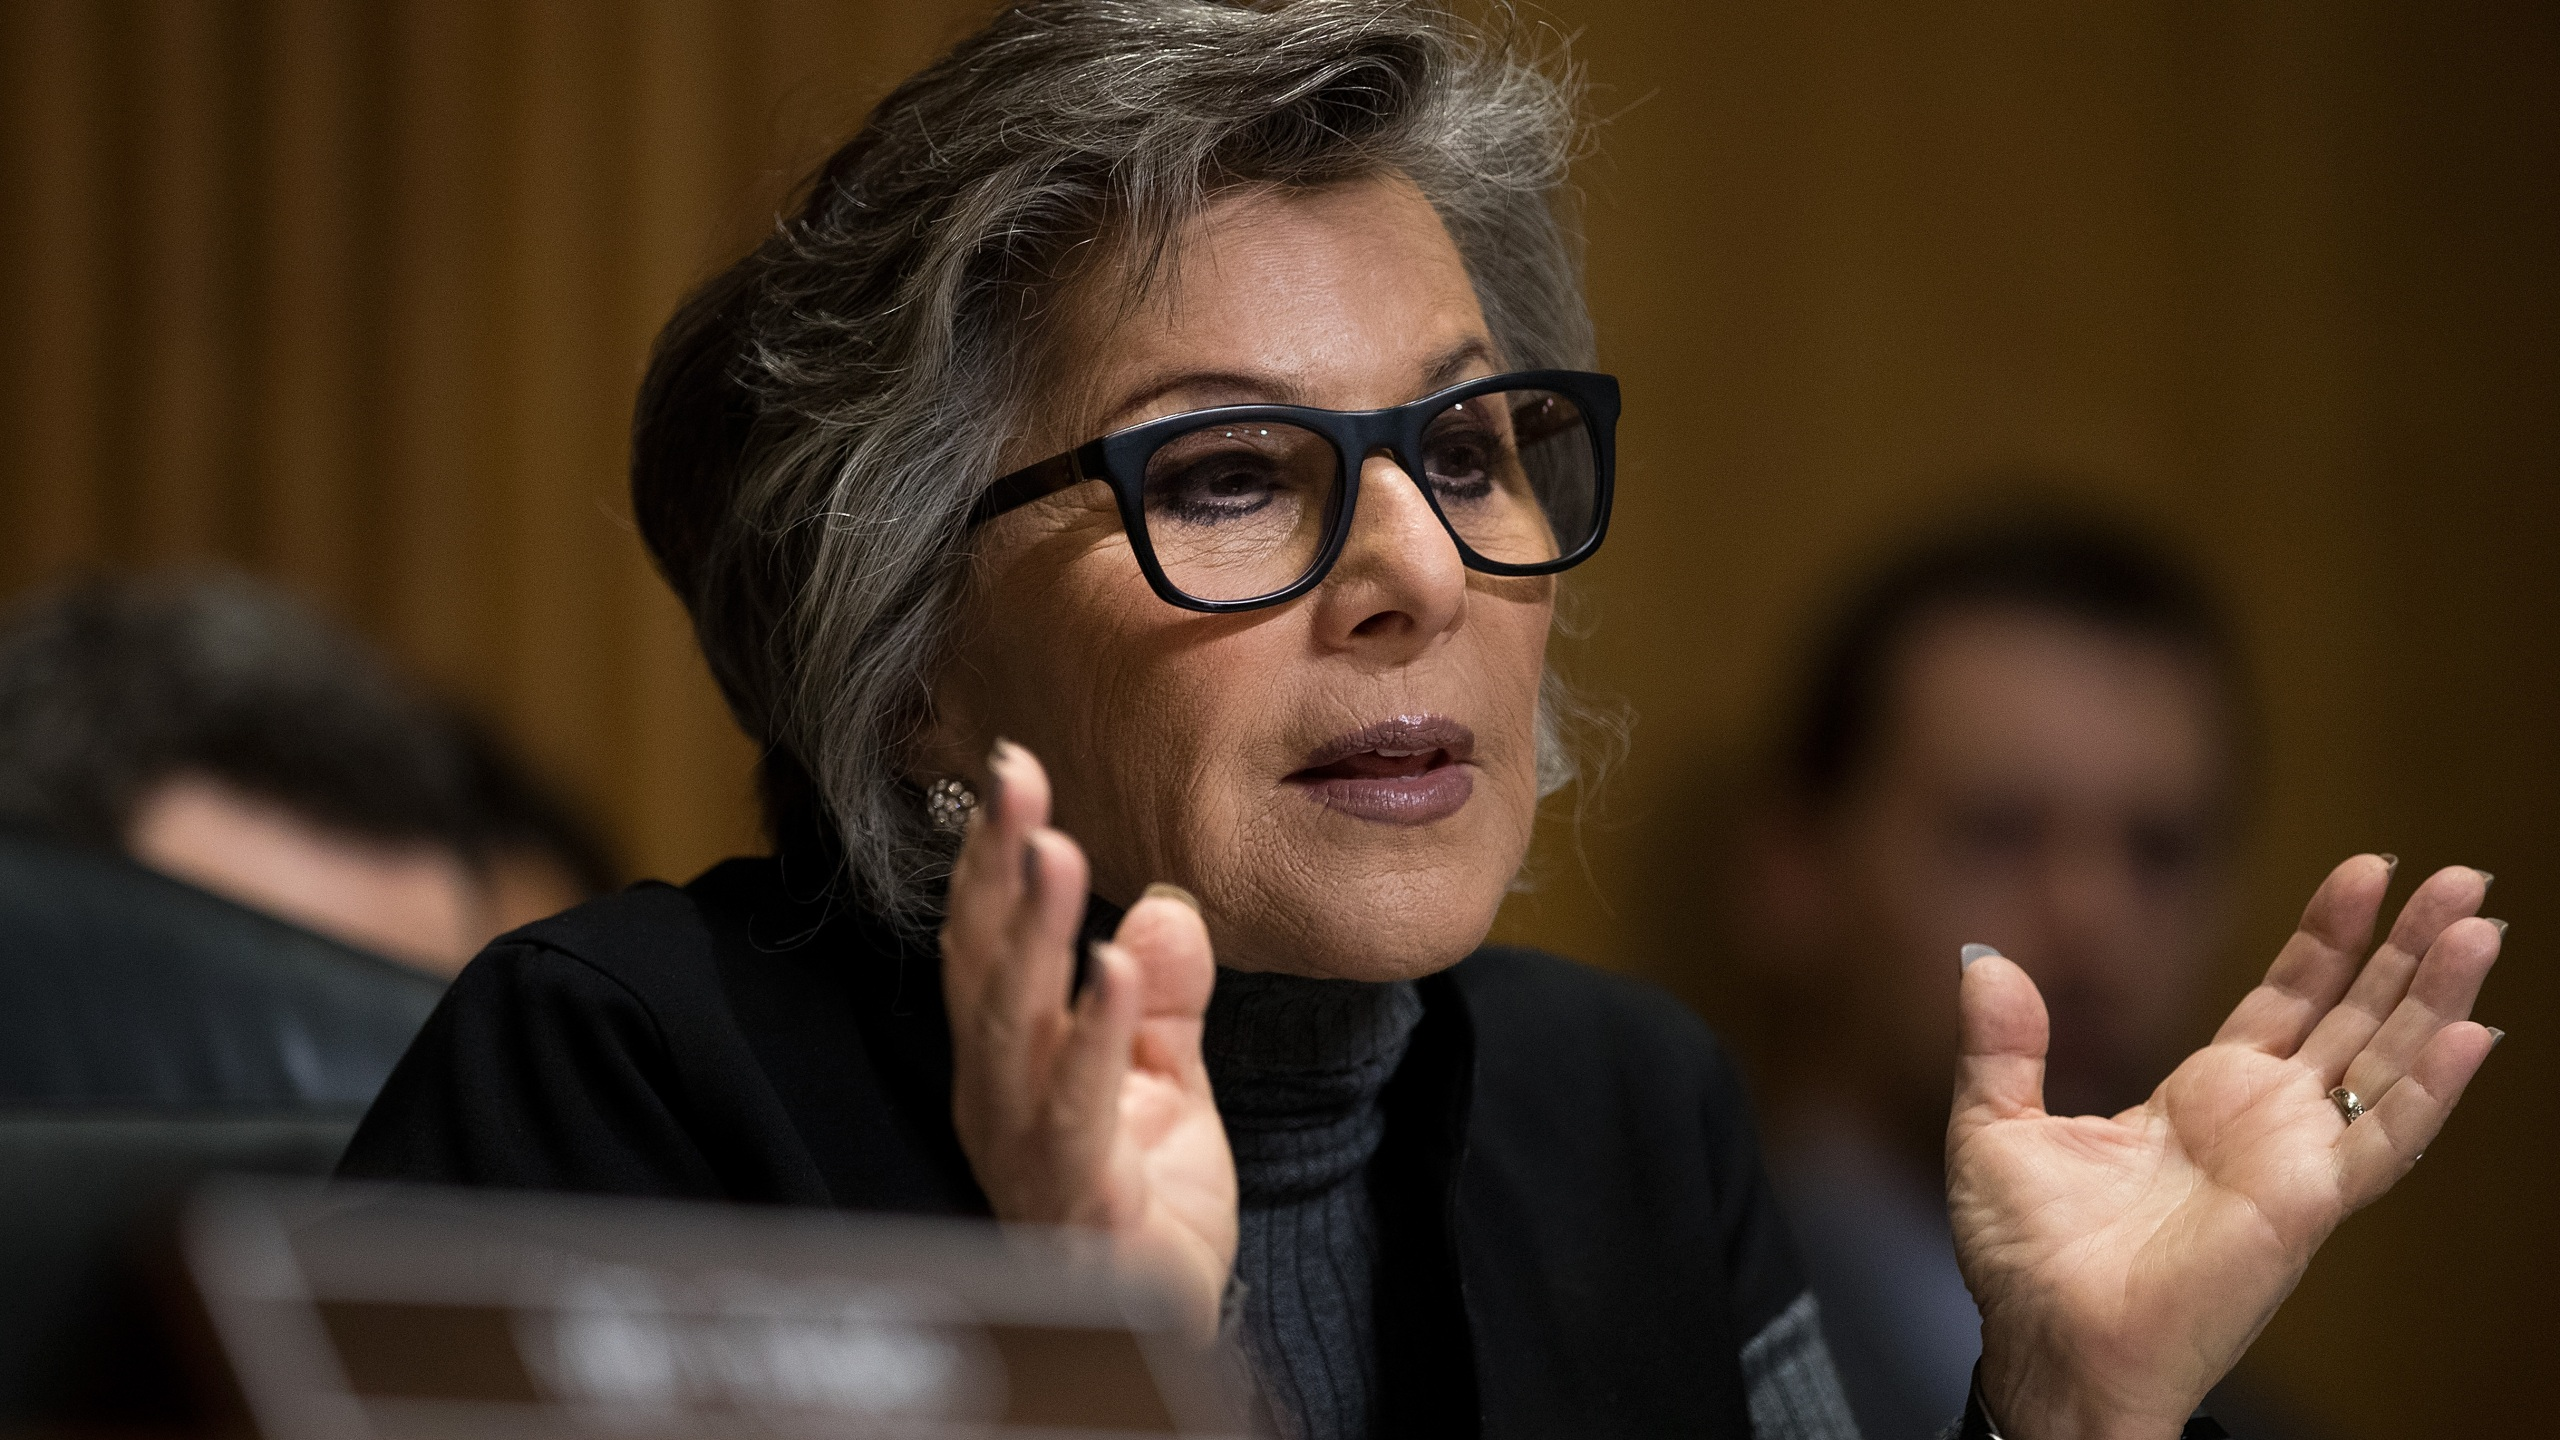 Committee ranking member Sen. Barbara Boxer (D-CA) questions witnesses during a Senate Foreign Relations Committee hearing concerning cartels and the U.S. heroin epidemic, on Capitol Hill on May 26, 2016, in Washington, DC. (Drew Angerer/Getty Images)